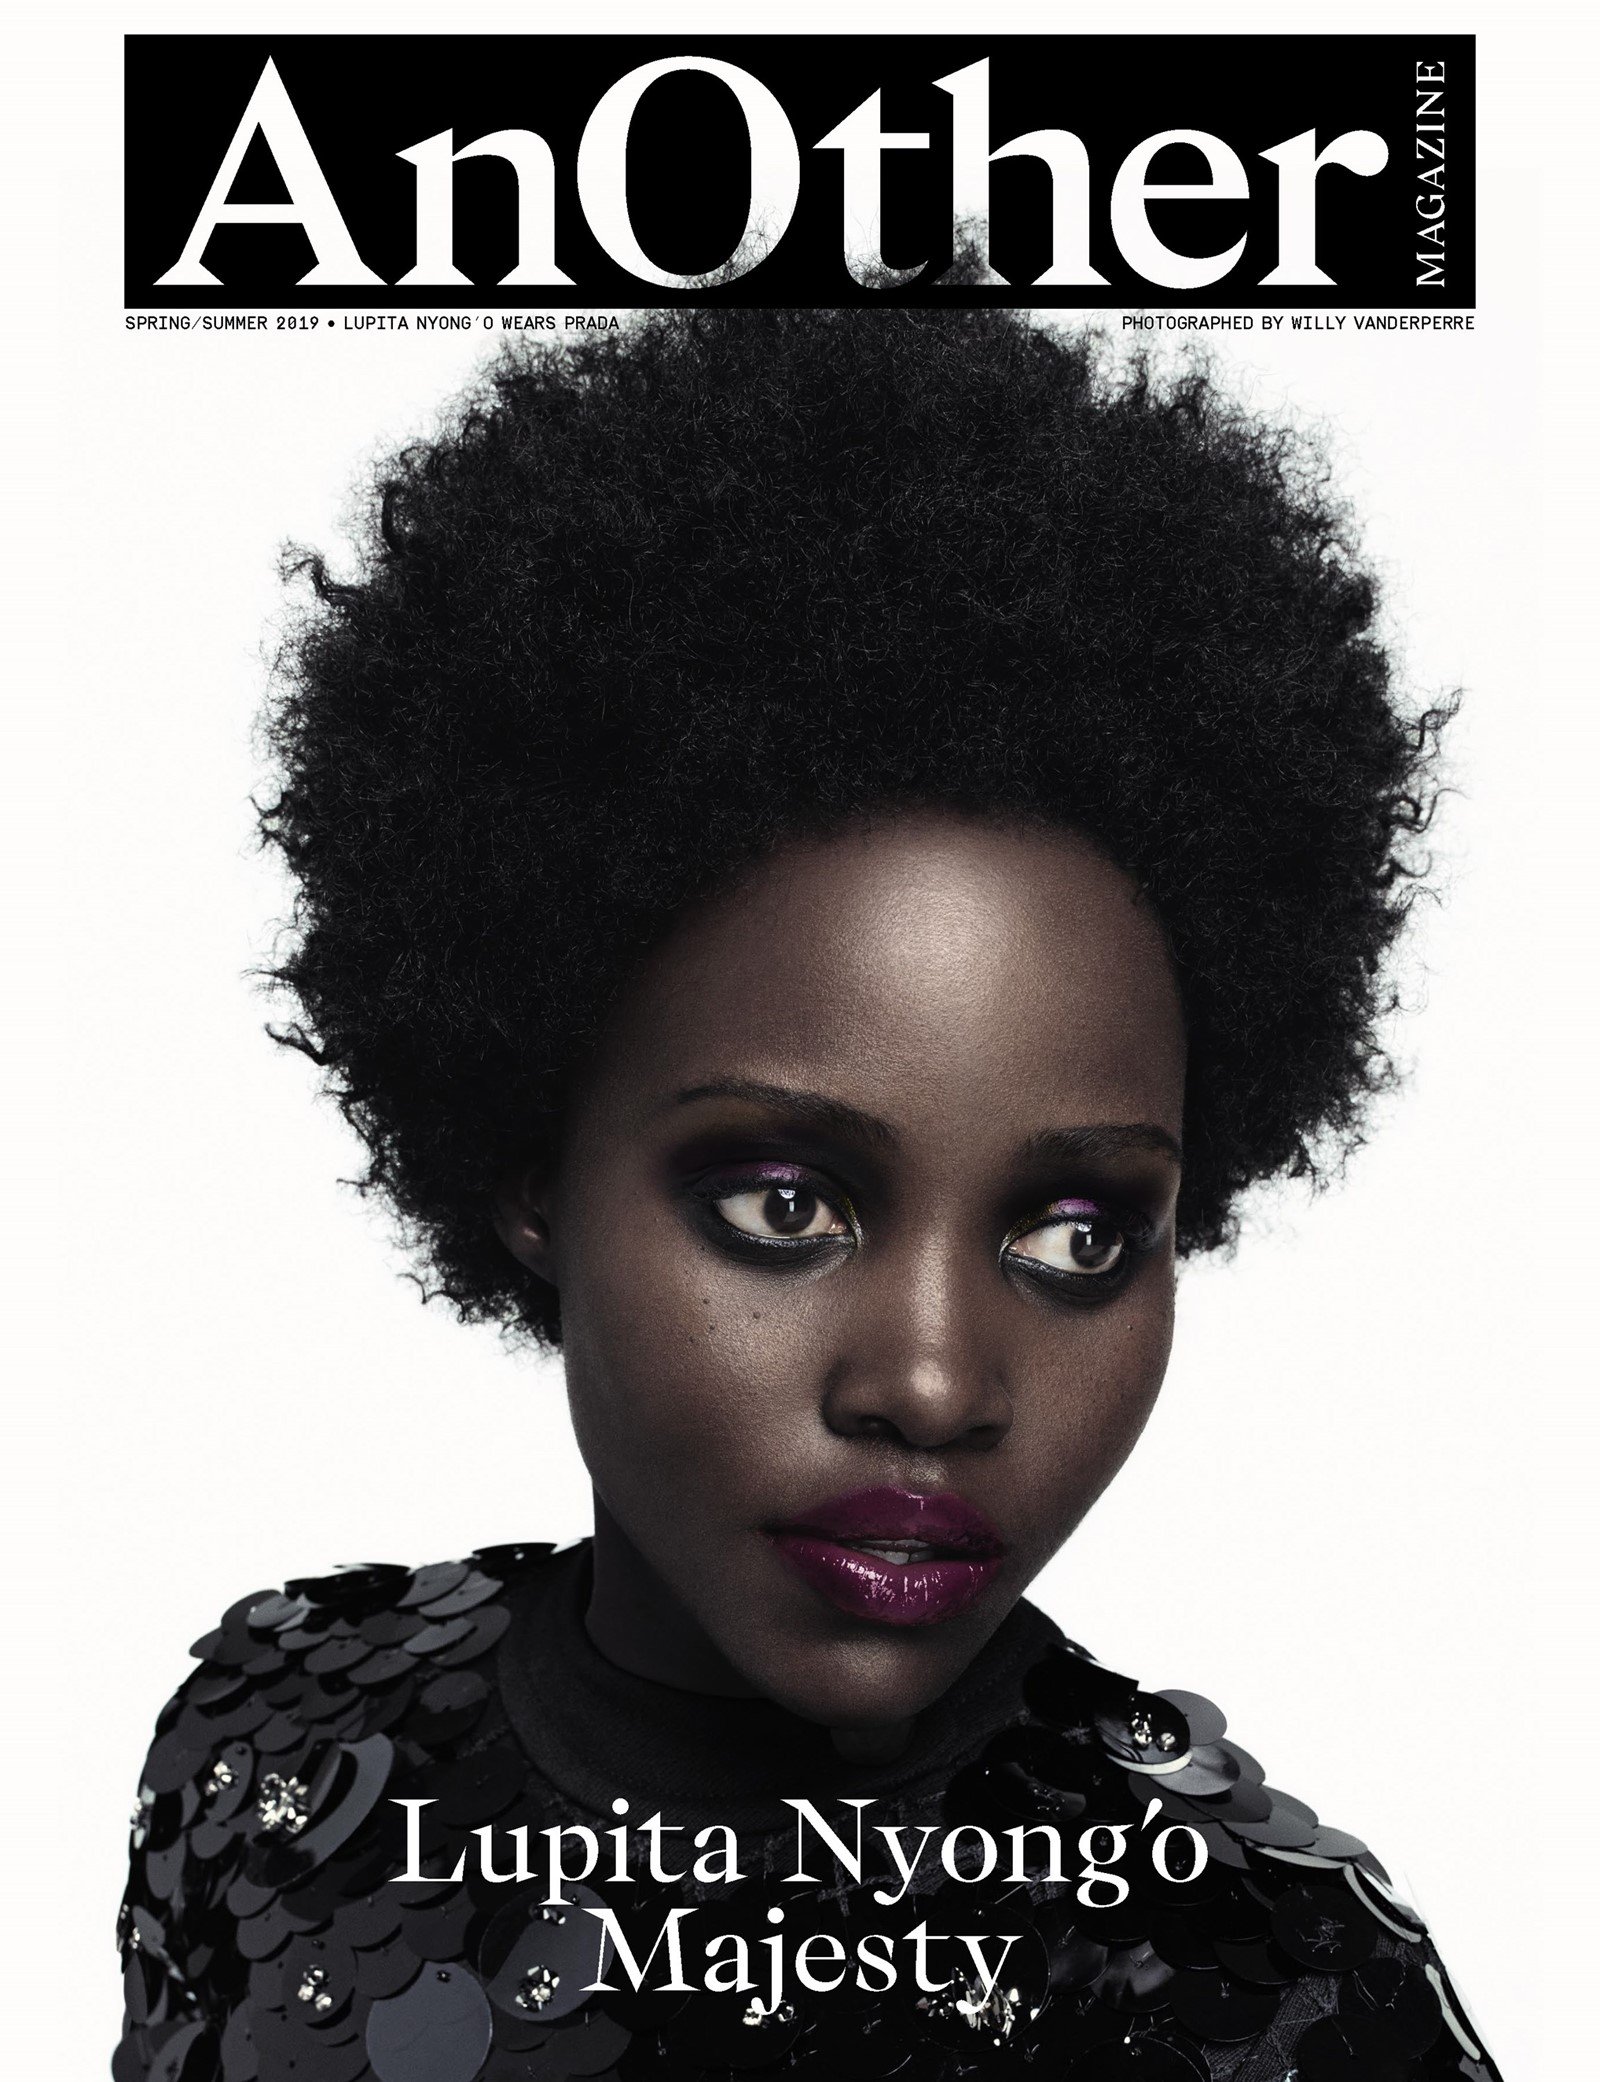 Lupita Nyong'o's cover for AnOther Magazine's Newest Issue is as Artsy as it Gets